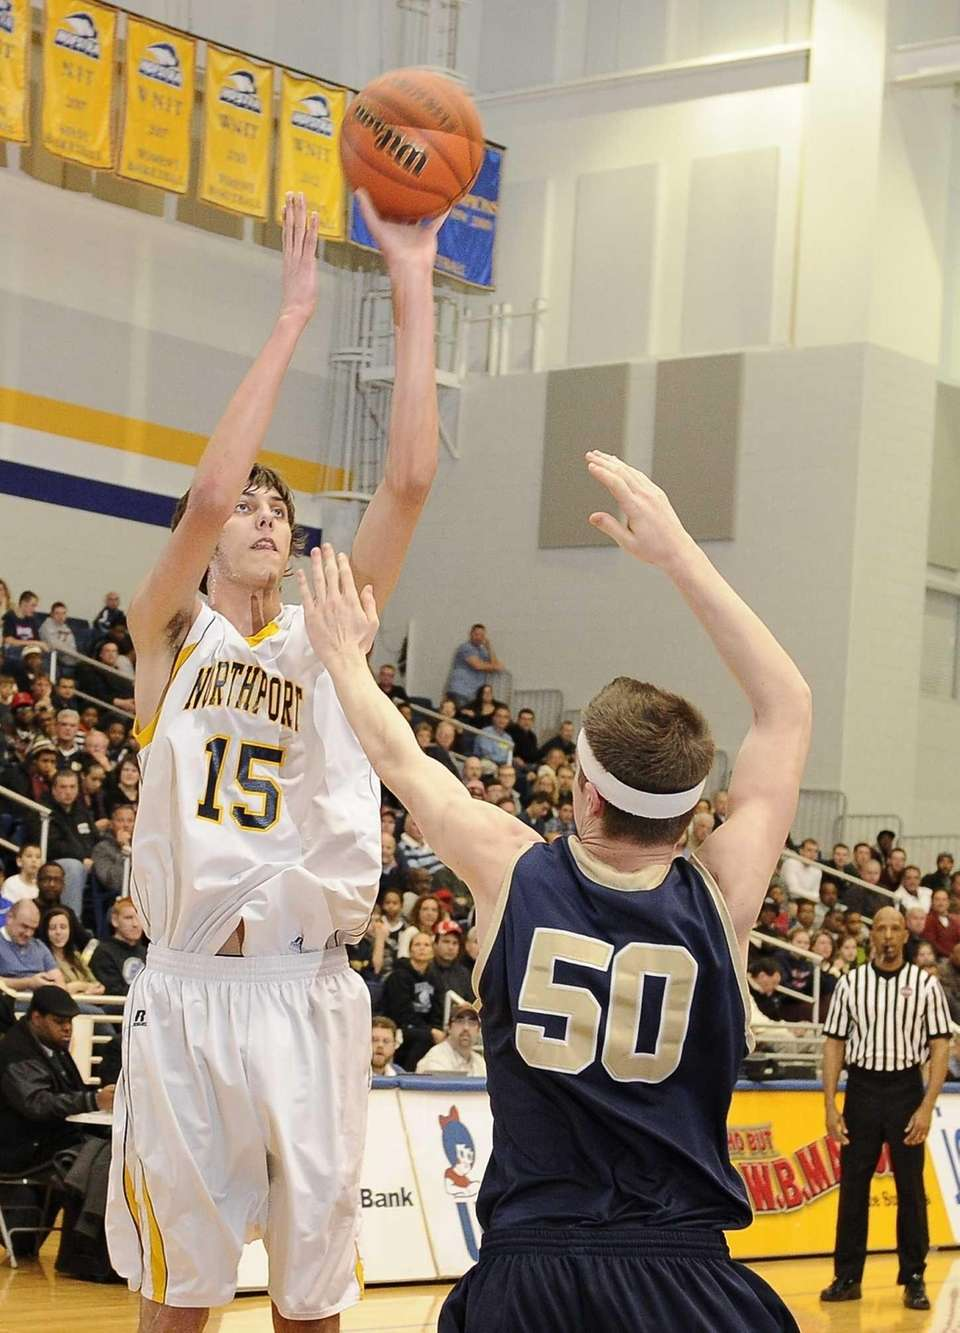 Northport's Luke Petrasek shoots ahead of Baldwin's Michael